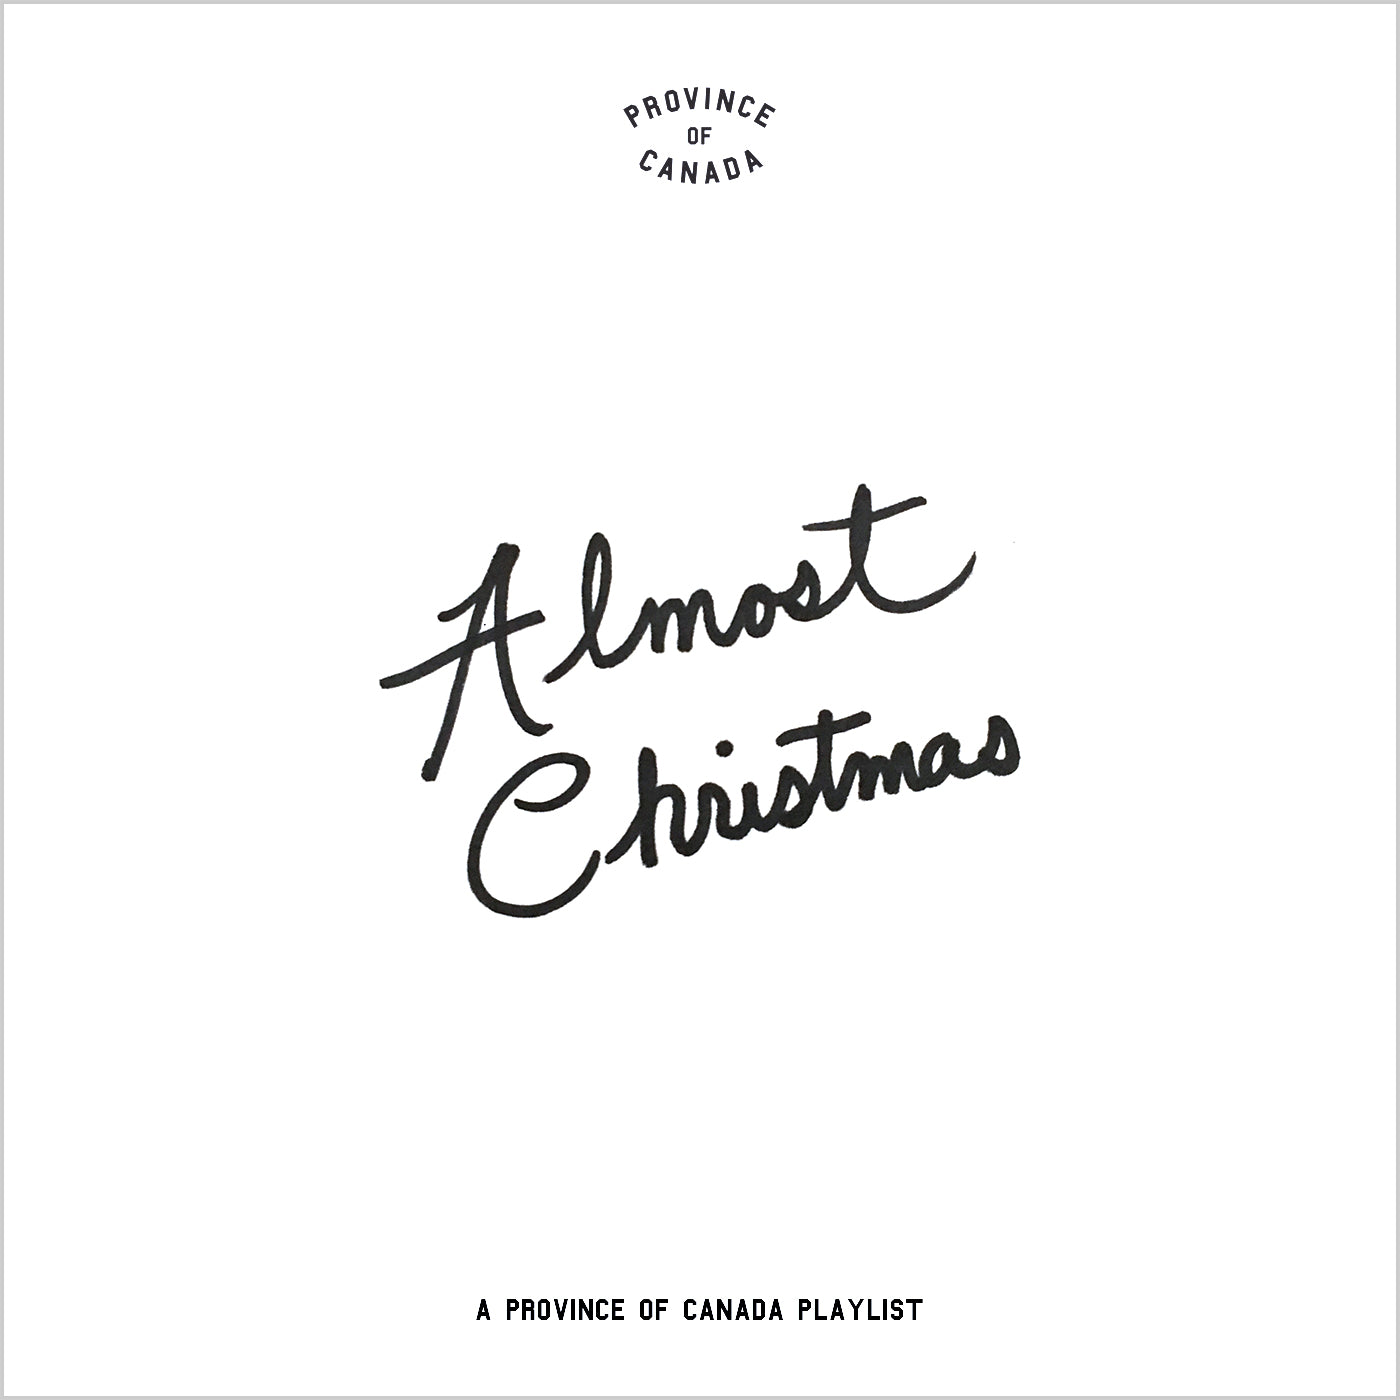 Province of Canada - Playlist - Almost Christmas